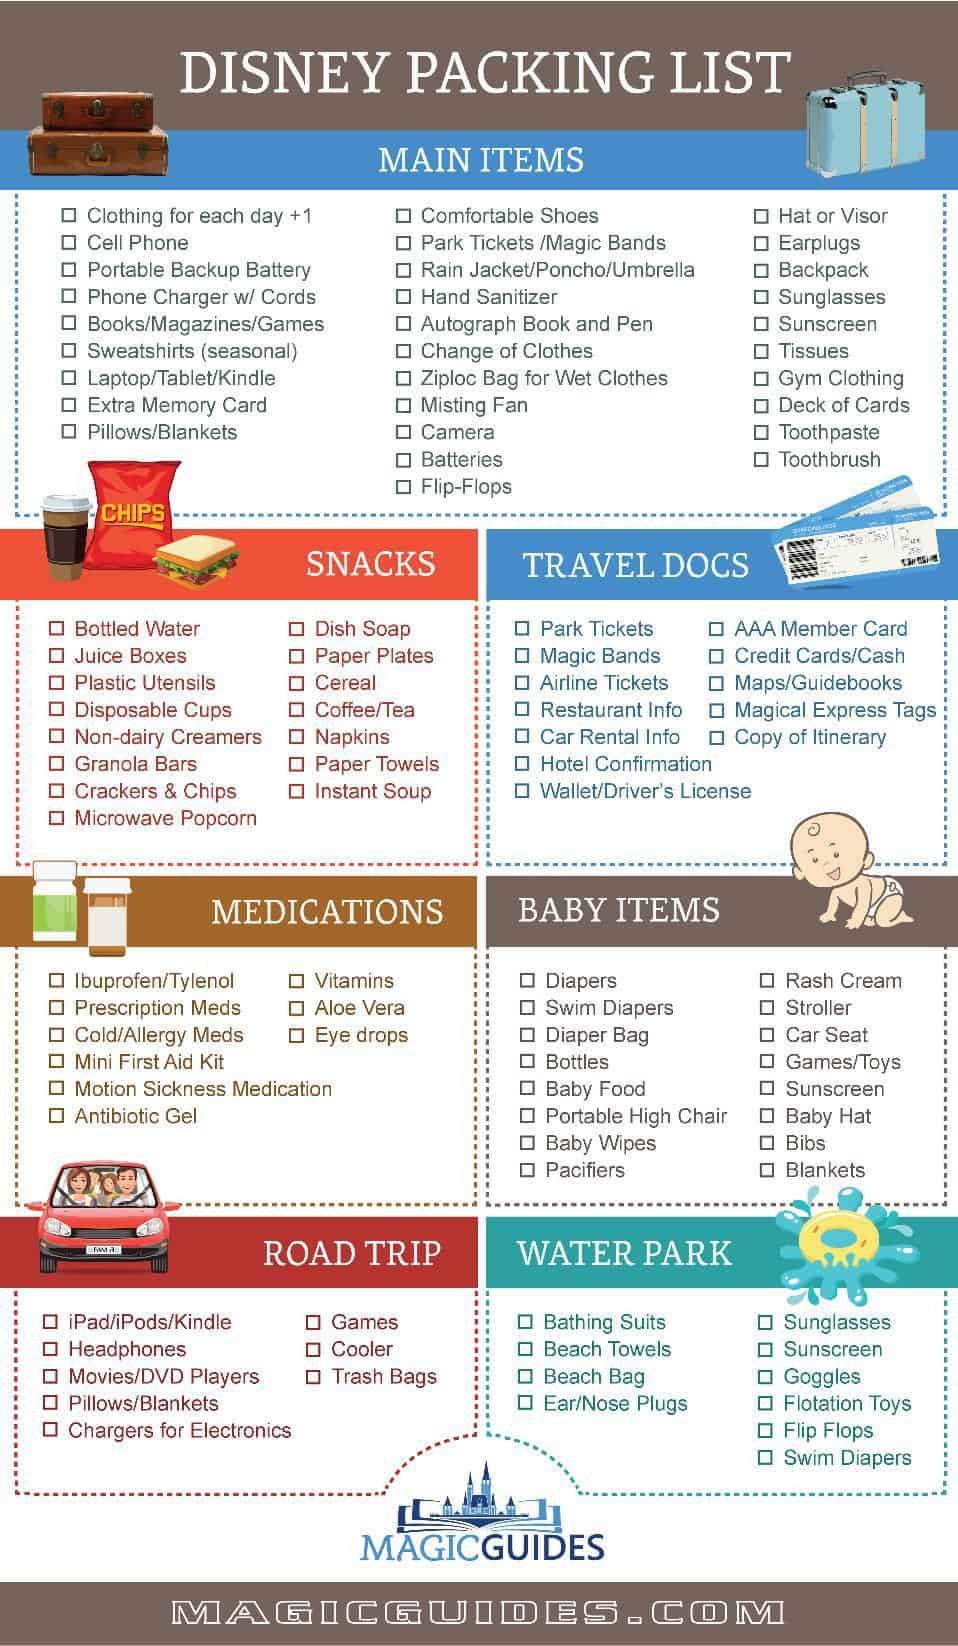 Disney Packing List PDF